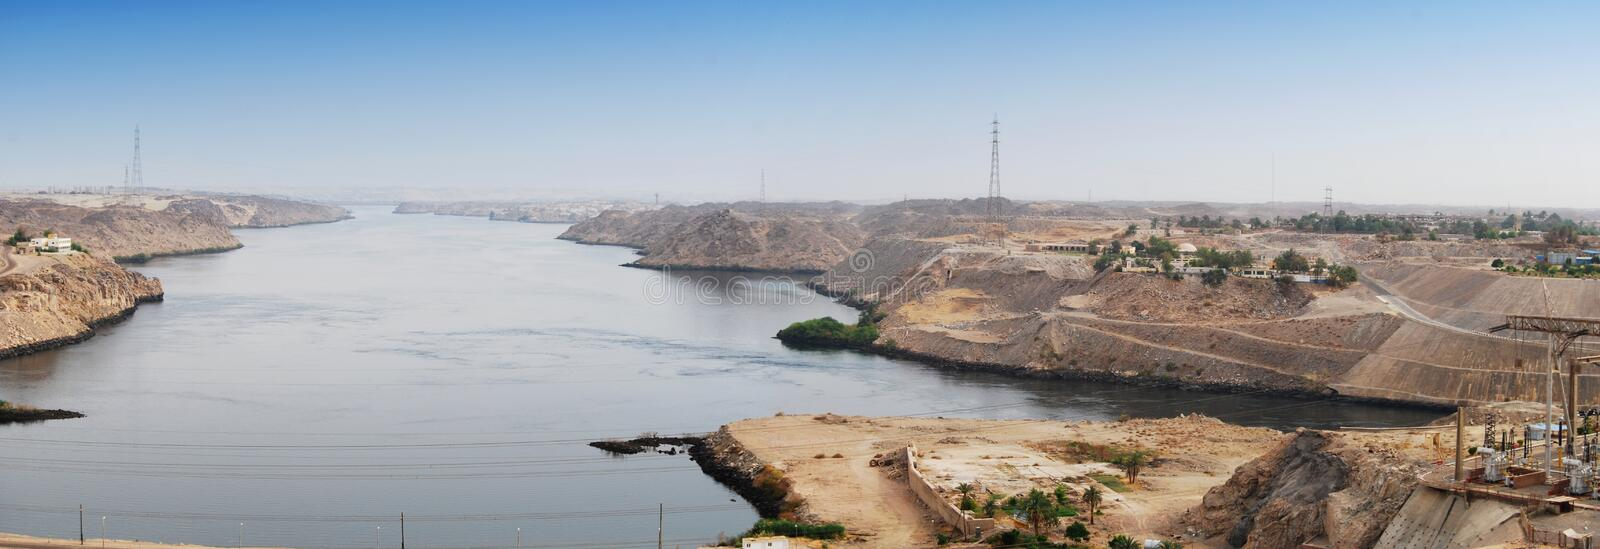 Vue de panorama de Nile River du barrage d'Assouan, Egypte photo libre de droits